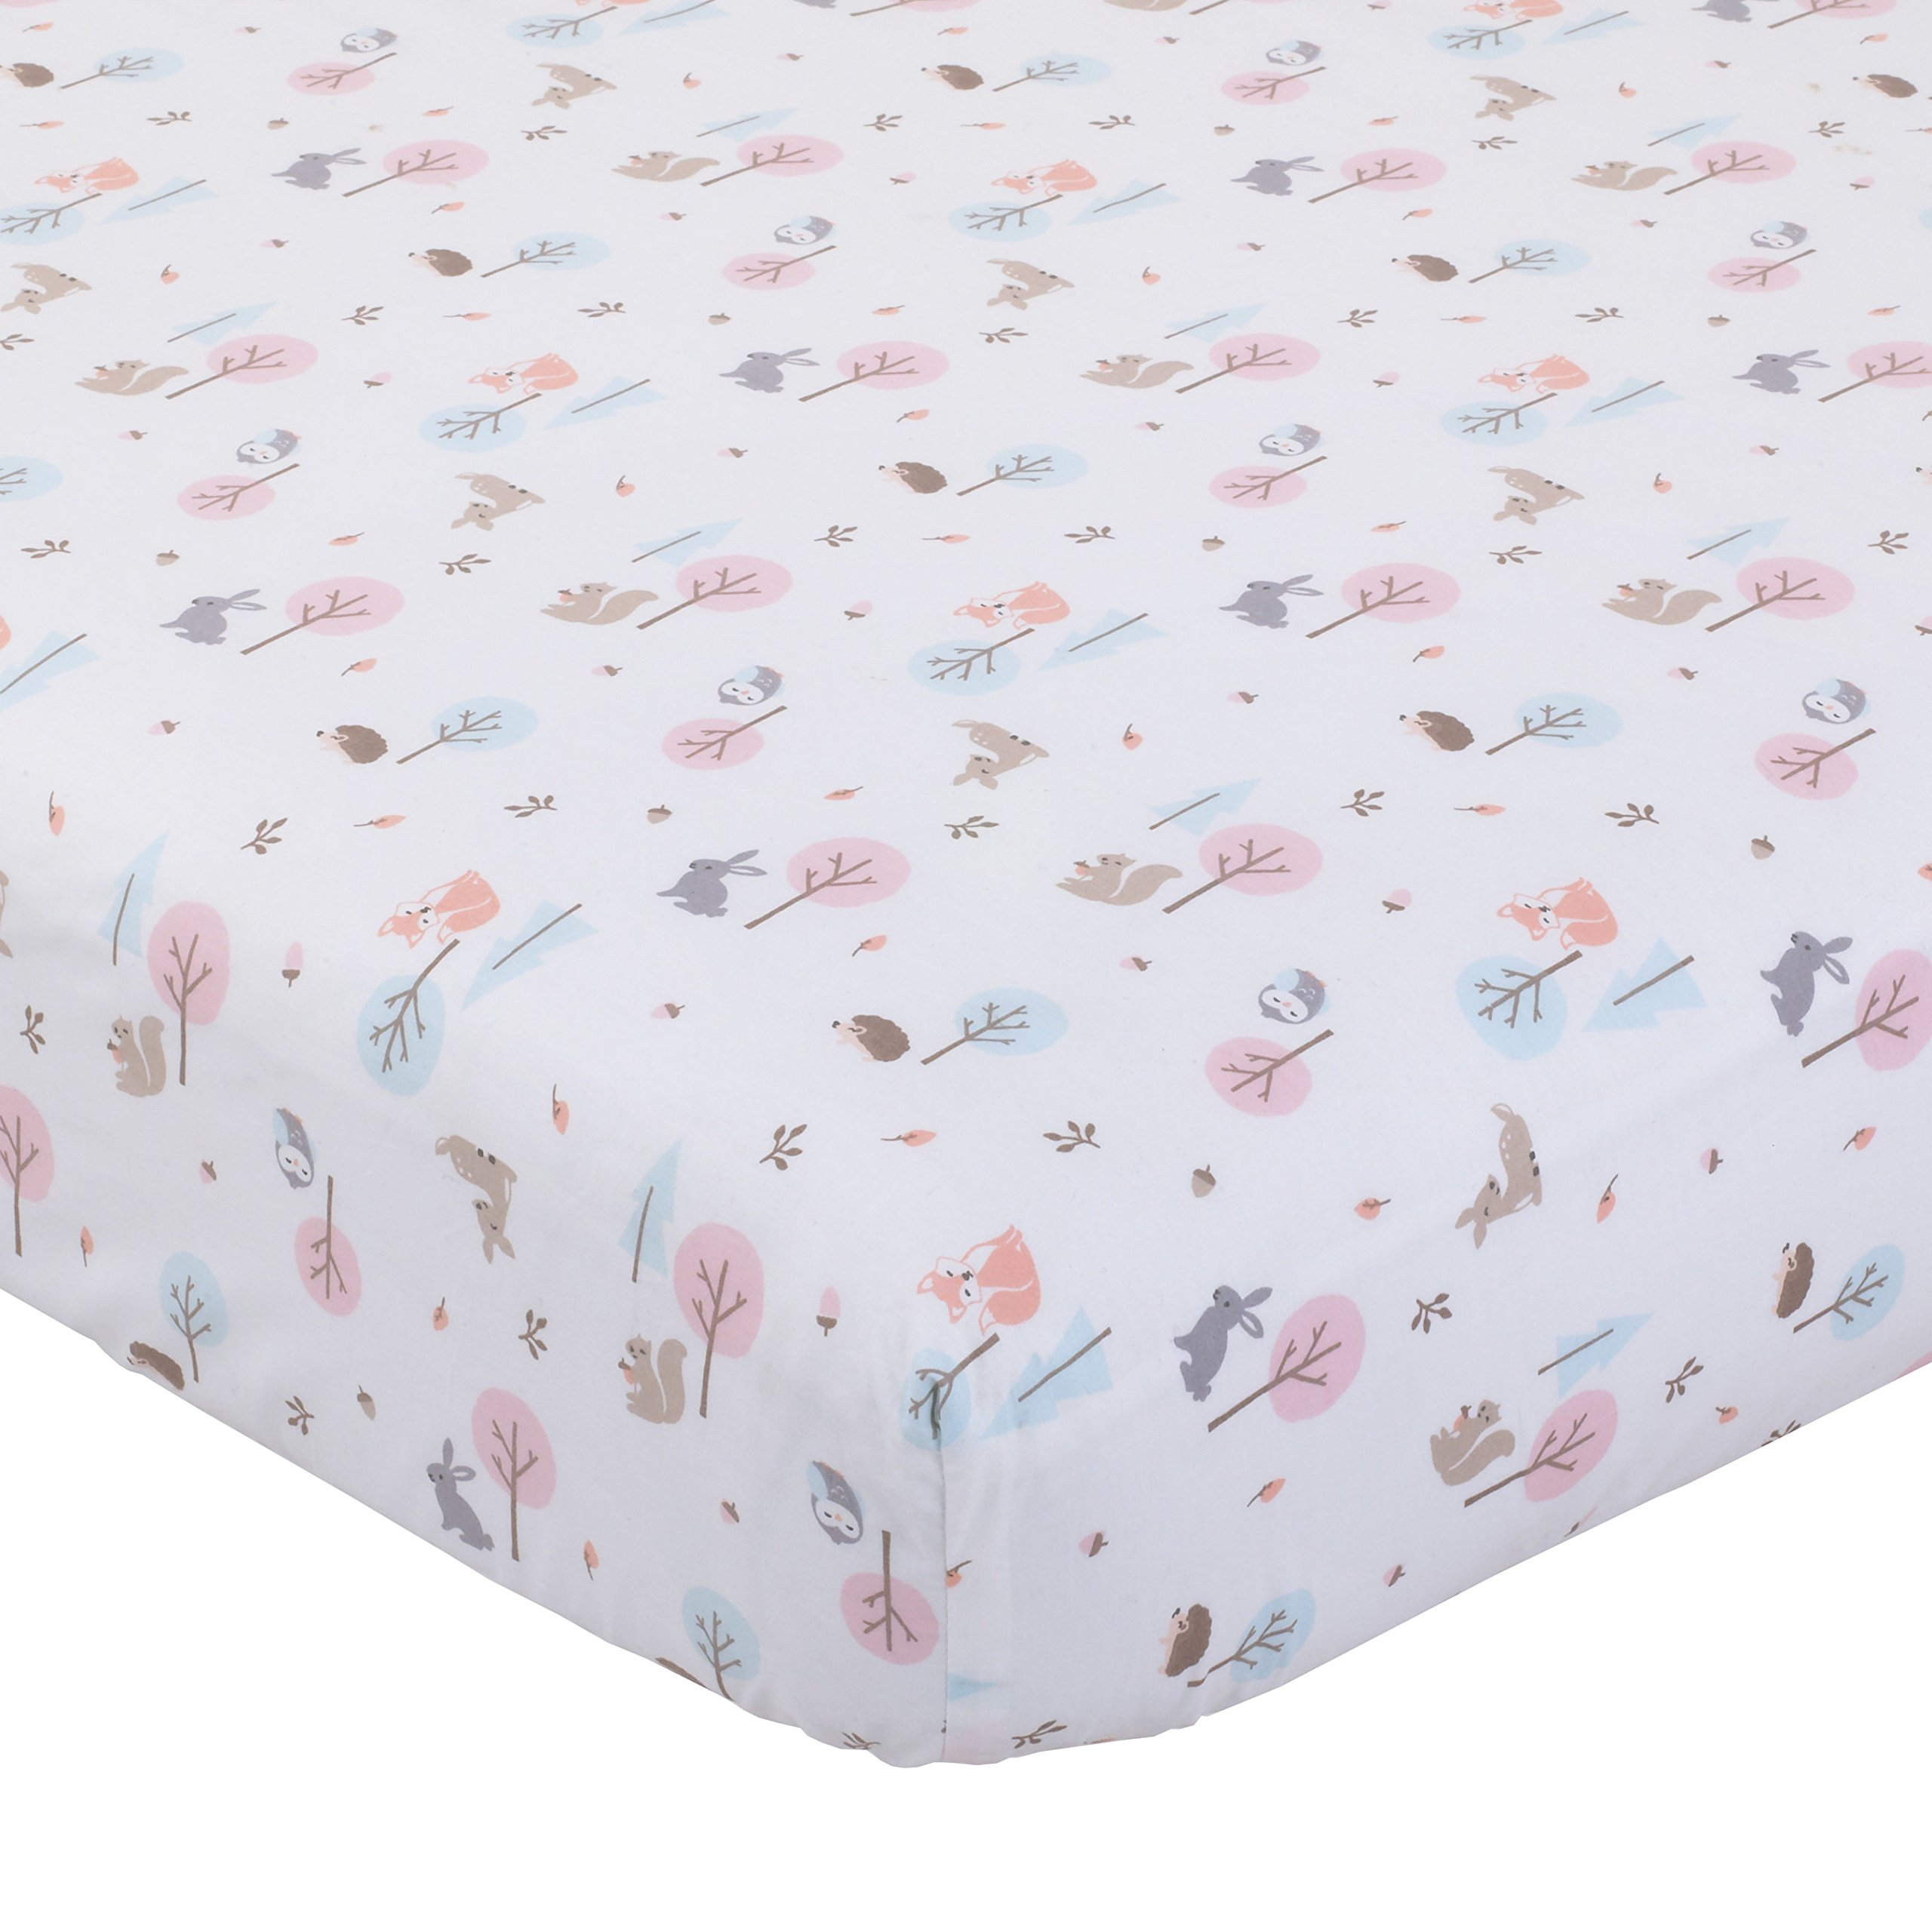 Ln Beautiful Girls White Pink Brown Woodland Friends Fitted Crib Sheet, Animal Themed Nursery Bedding, Infant Child Toddler Bunny Squirrel Forest Fox Owl Nature Meadow Woods Cute Adorable, Cotton by Ln (Image #1)